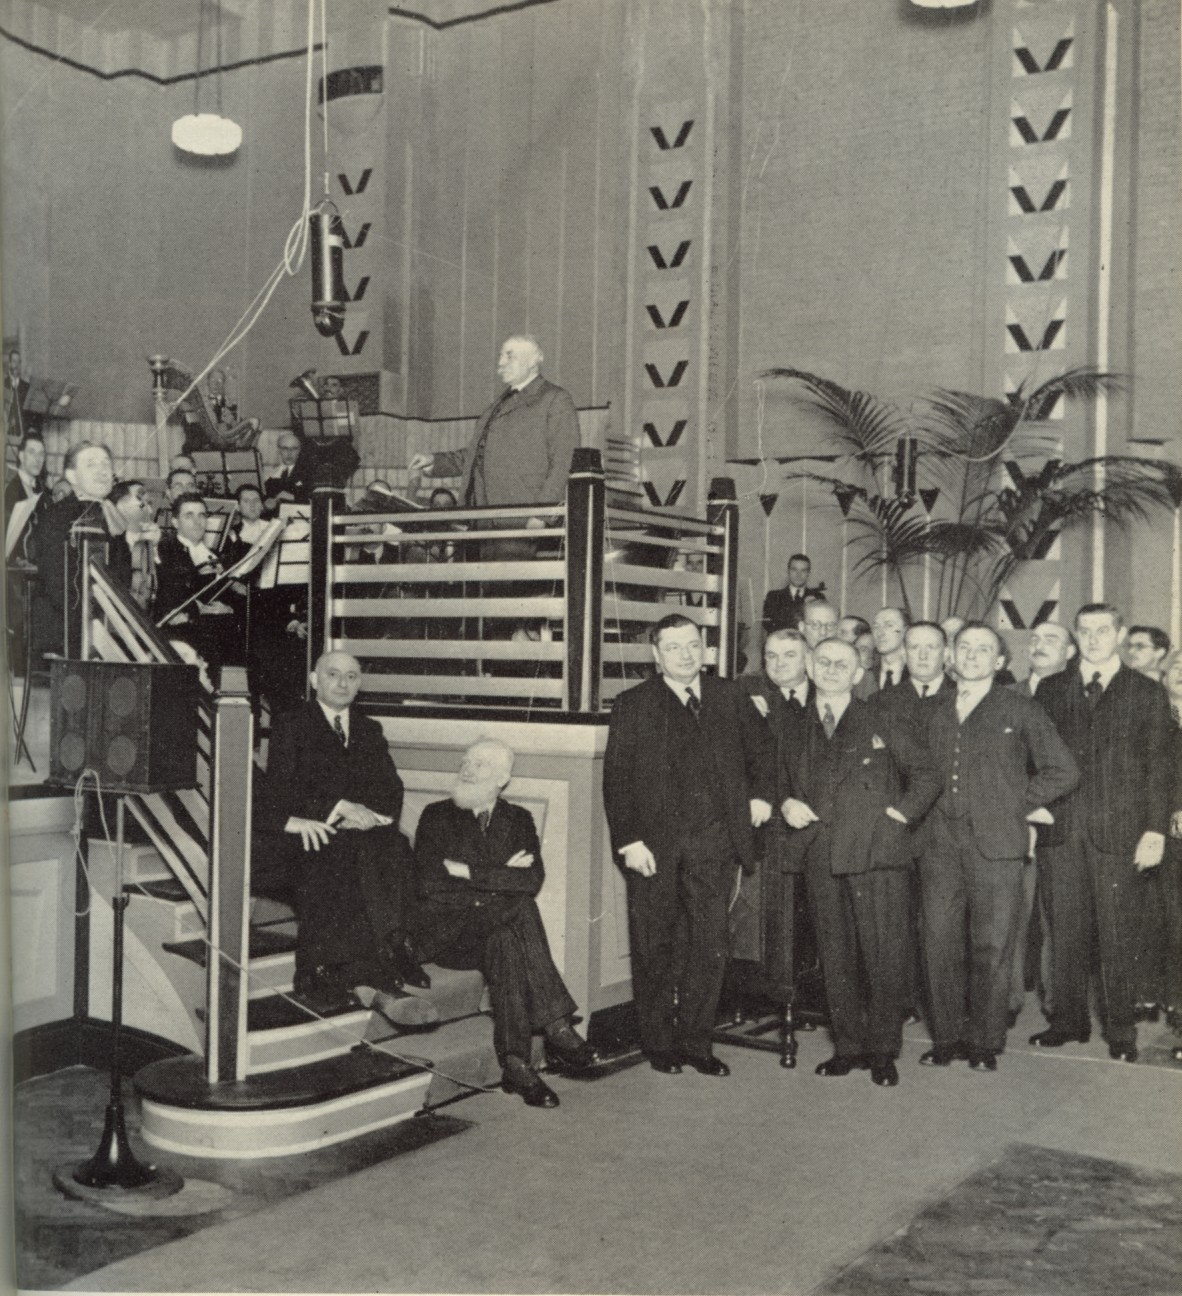 Elgar at the opening of Abbey Road studios